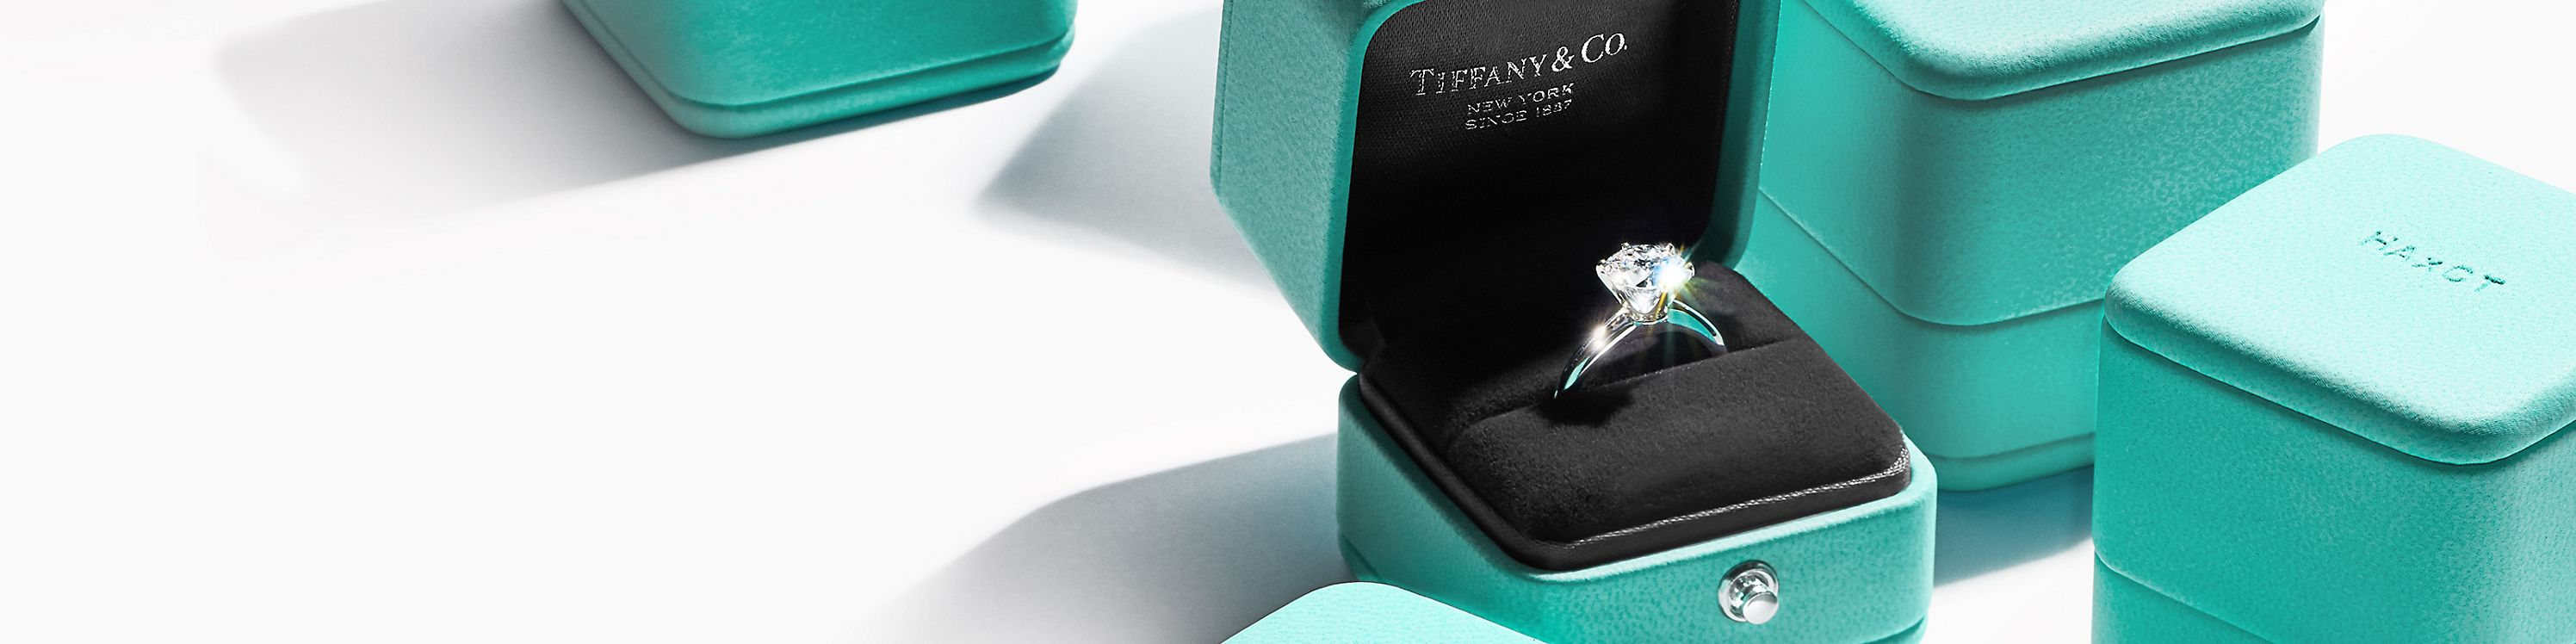 Shop Tiffany & Co. Engagement Rings